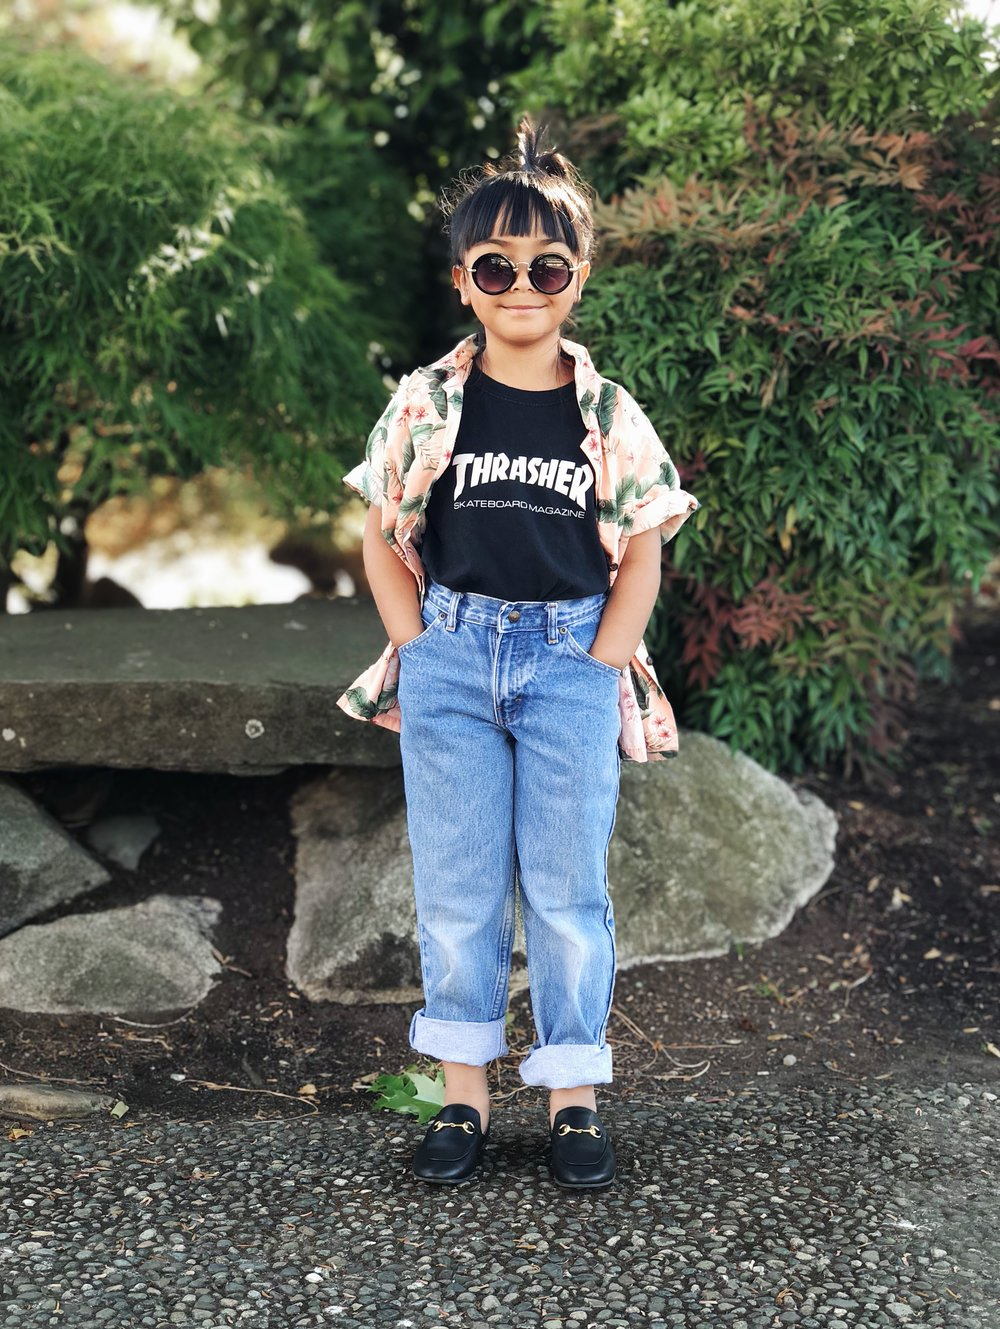 Tee:  Thrasher  | Shirt and Jeans: Thrifted from Goodwill | Shoes:  Gucci  | Sunnies:  Nordstrom